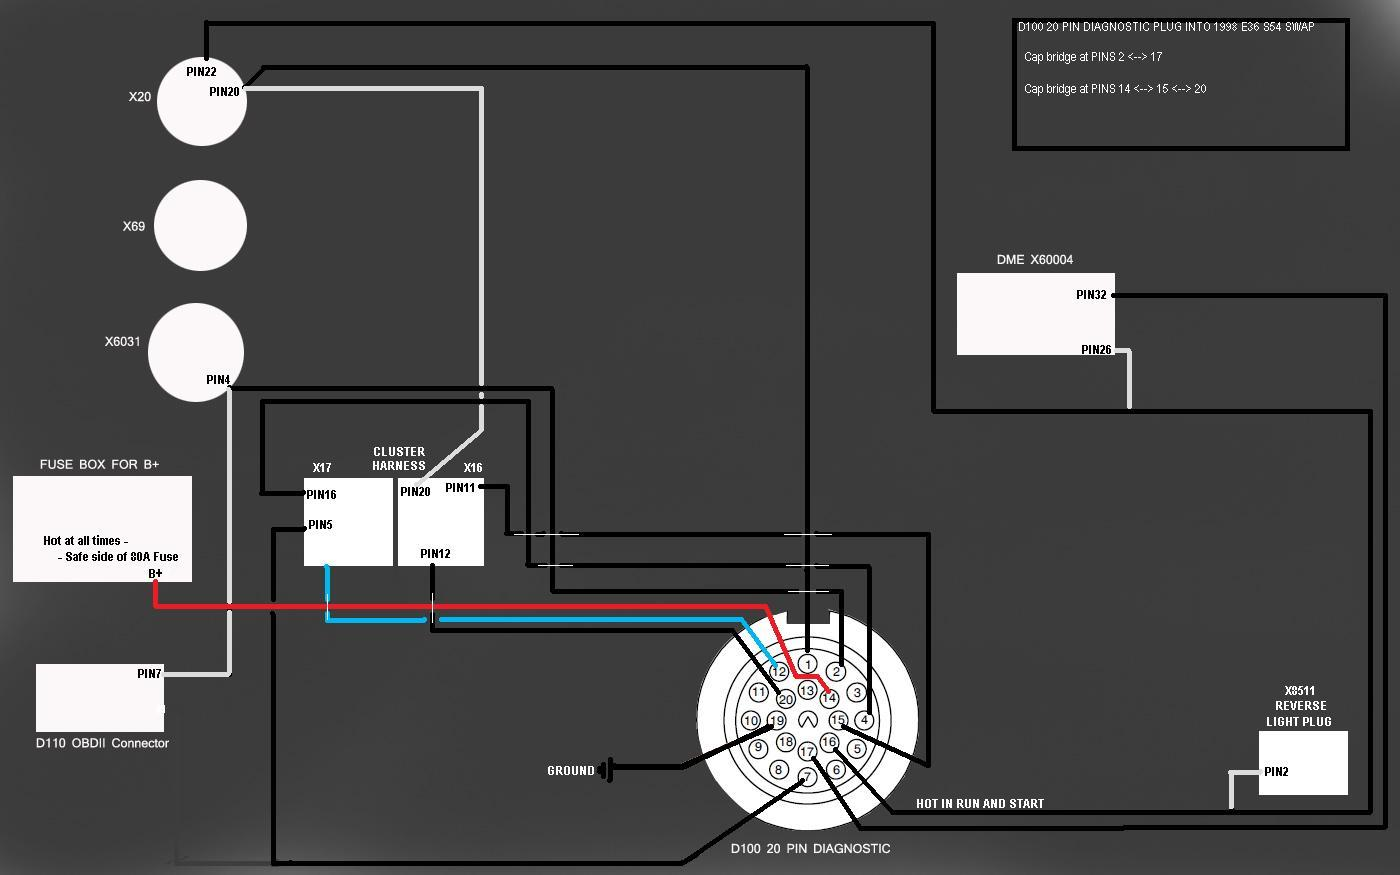 S54 Hellrot E36 328i Page 8 Smg Wiring Diagram The Blue Wire In Goes To X17 Pin 6